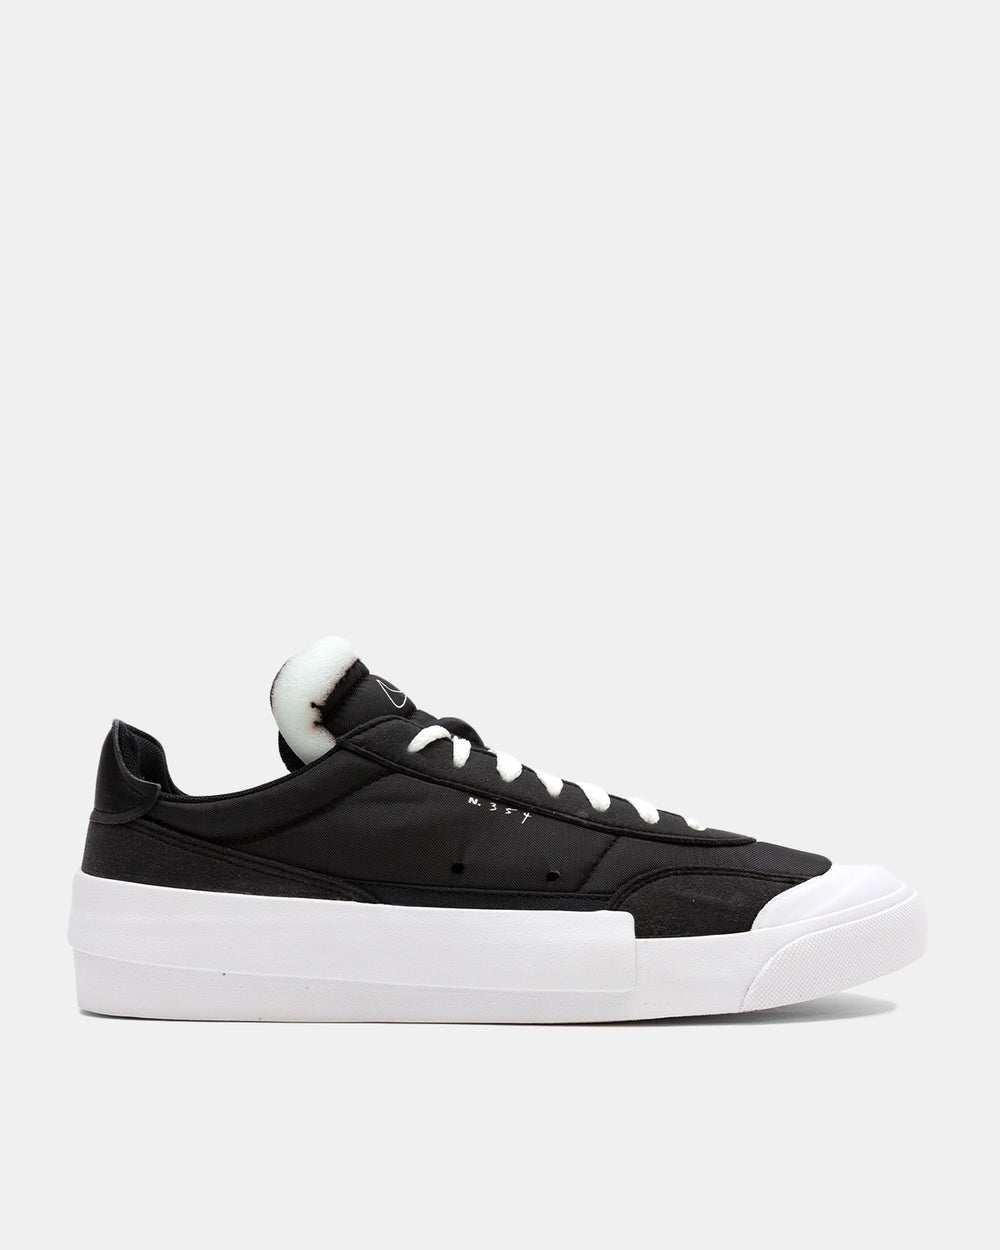 Drop Type LX (Black | White)